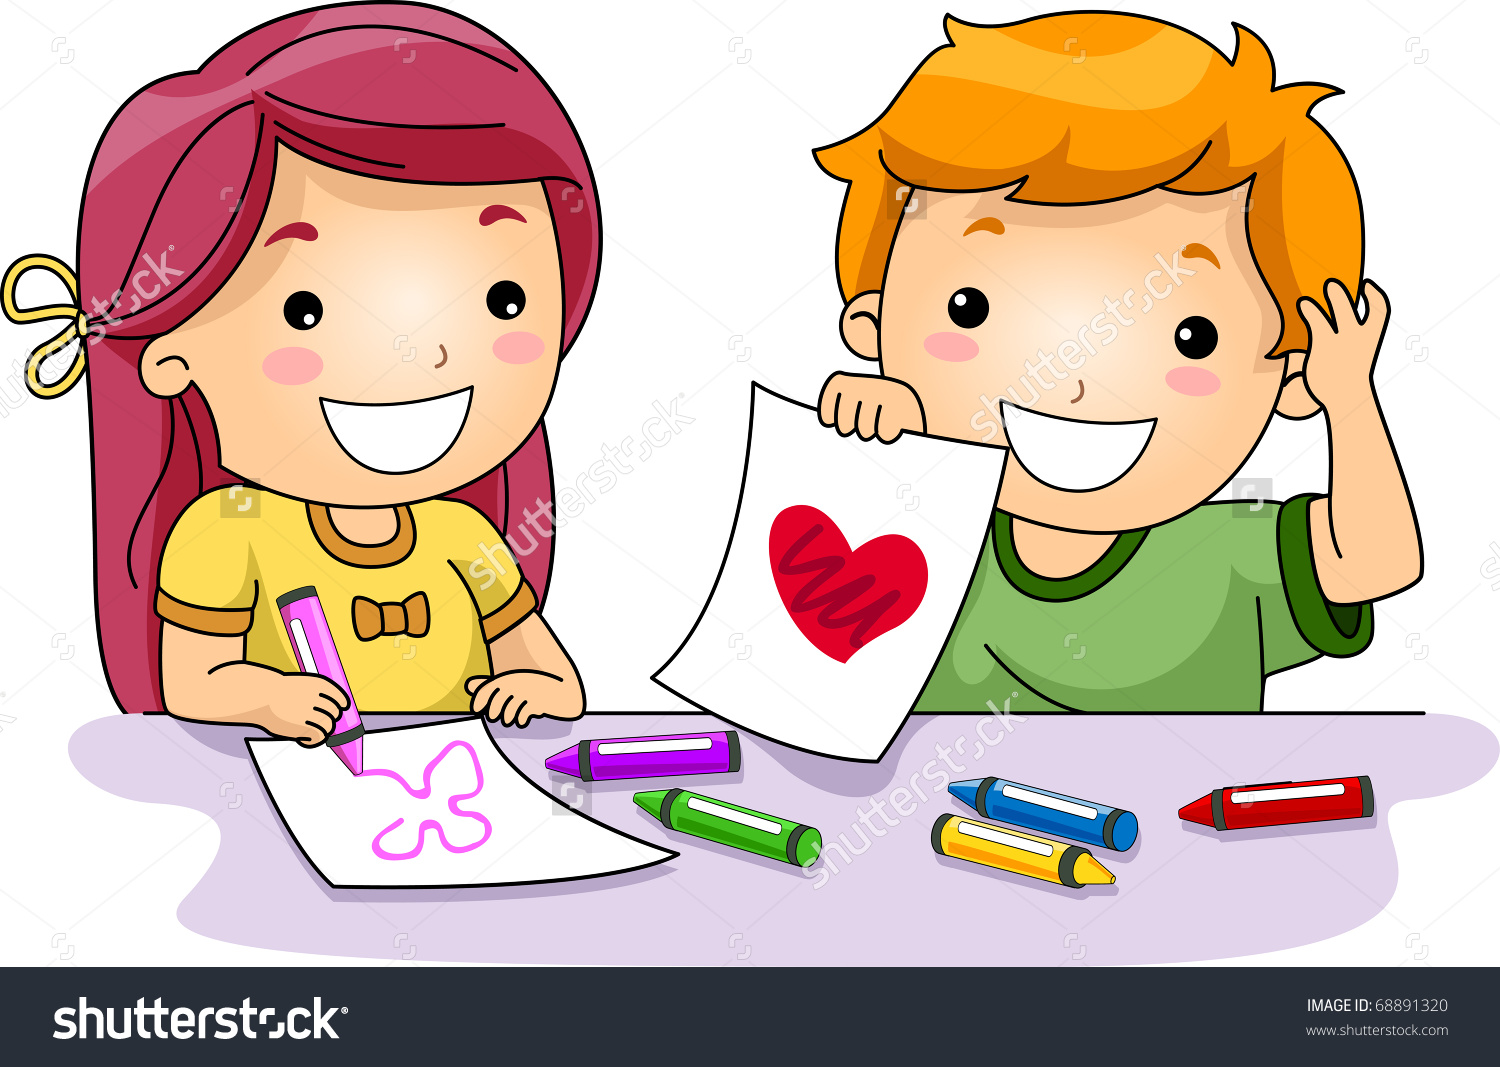 Illustration Kids Drawing Valentinerelated Things Stock Vector.